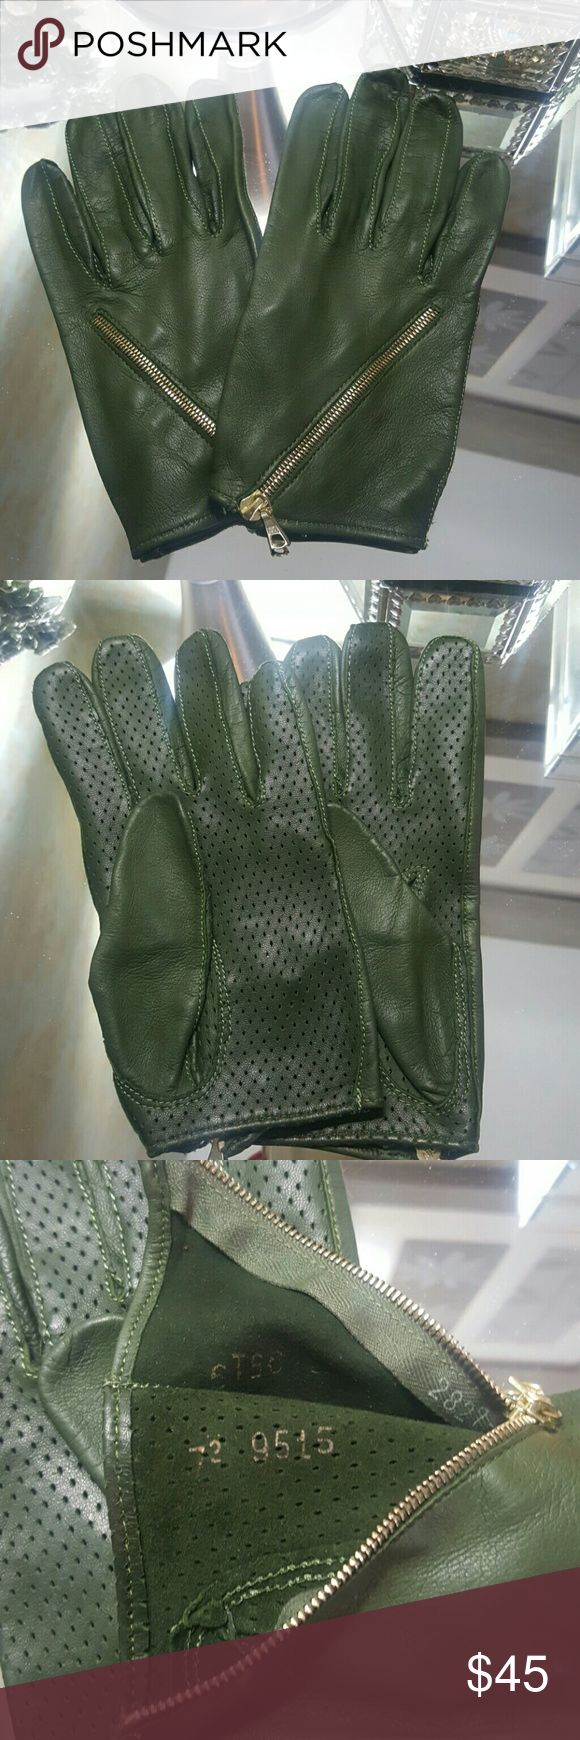 Leather driving gloves with zipper - Olive Leather Driving Gloves Superfine Brand With Serial Numbers Olive Green Leather With